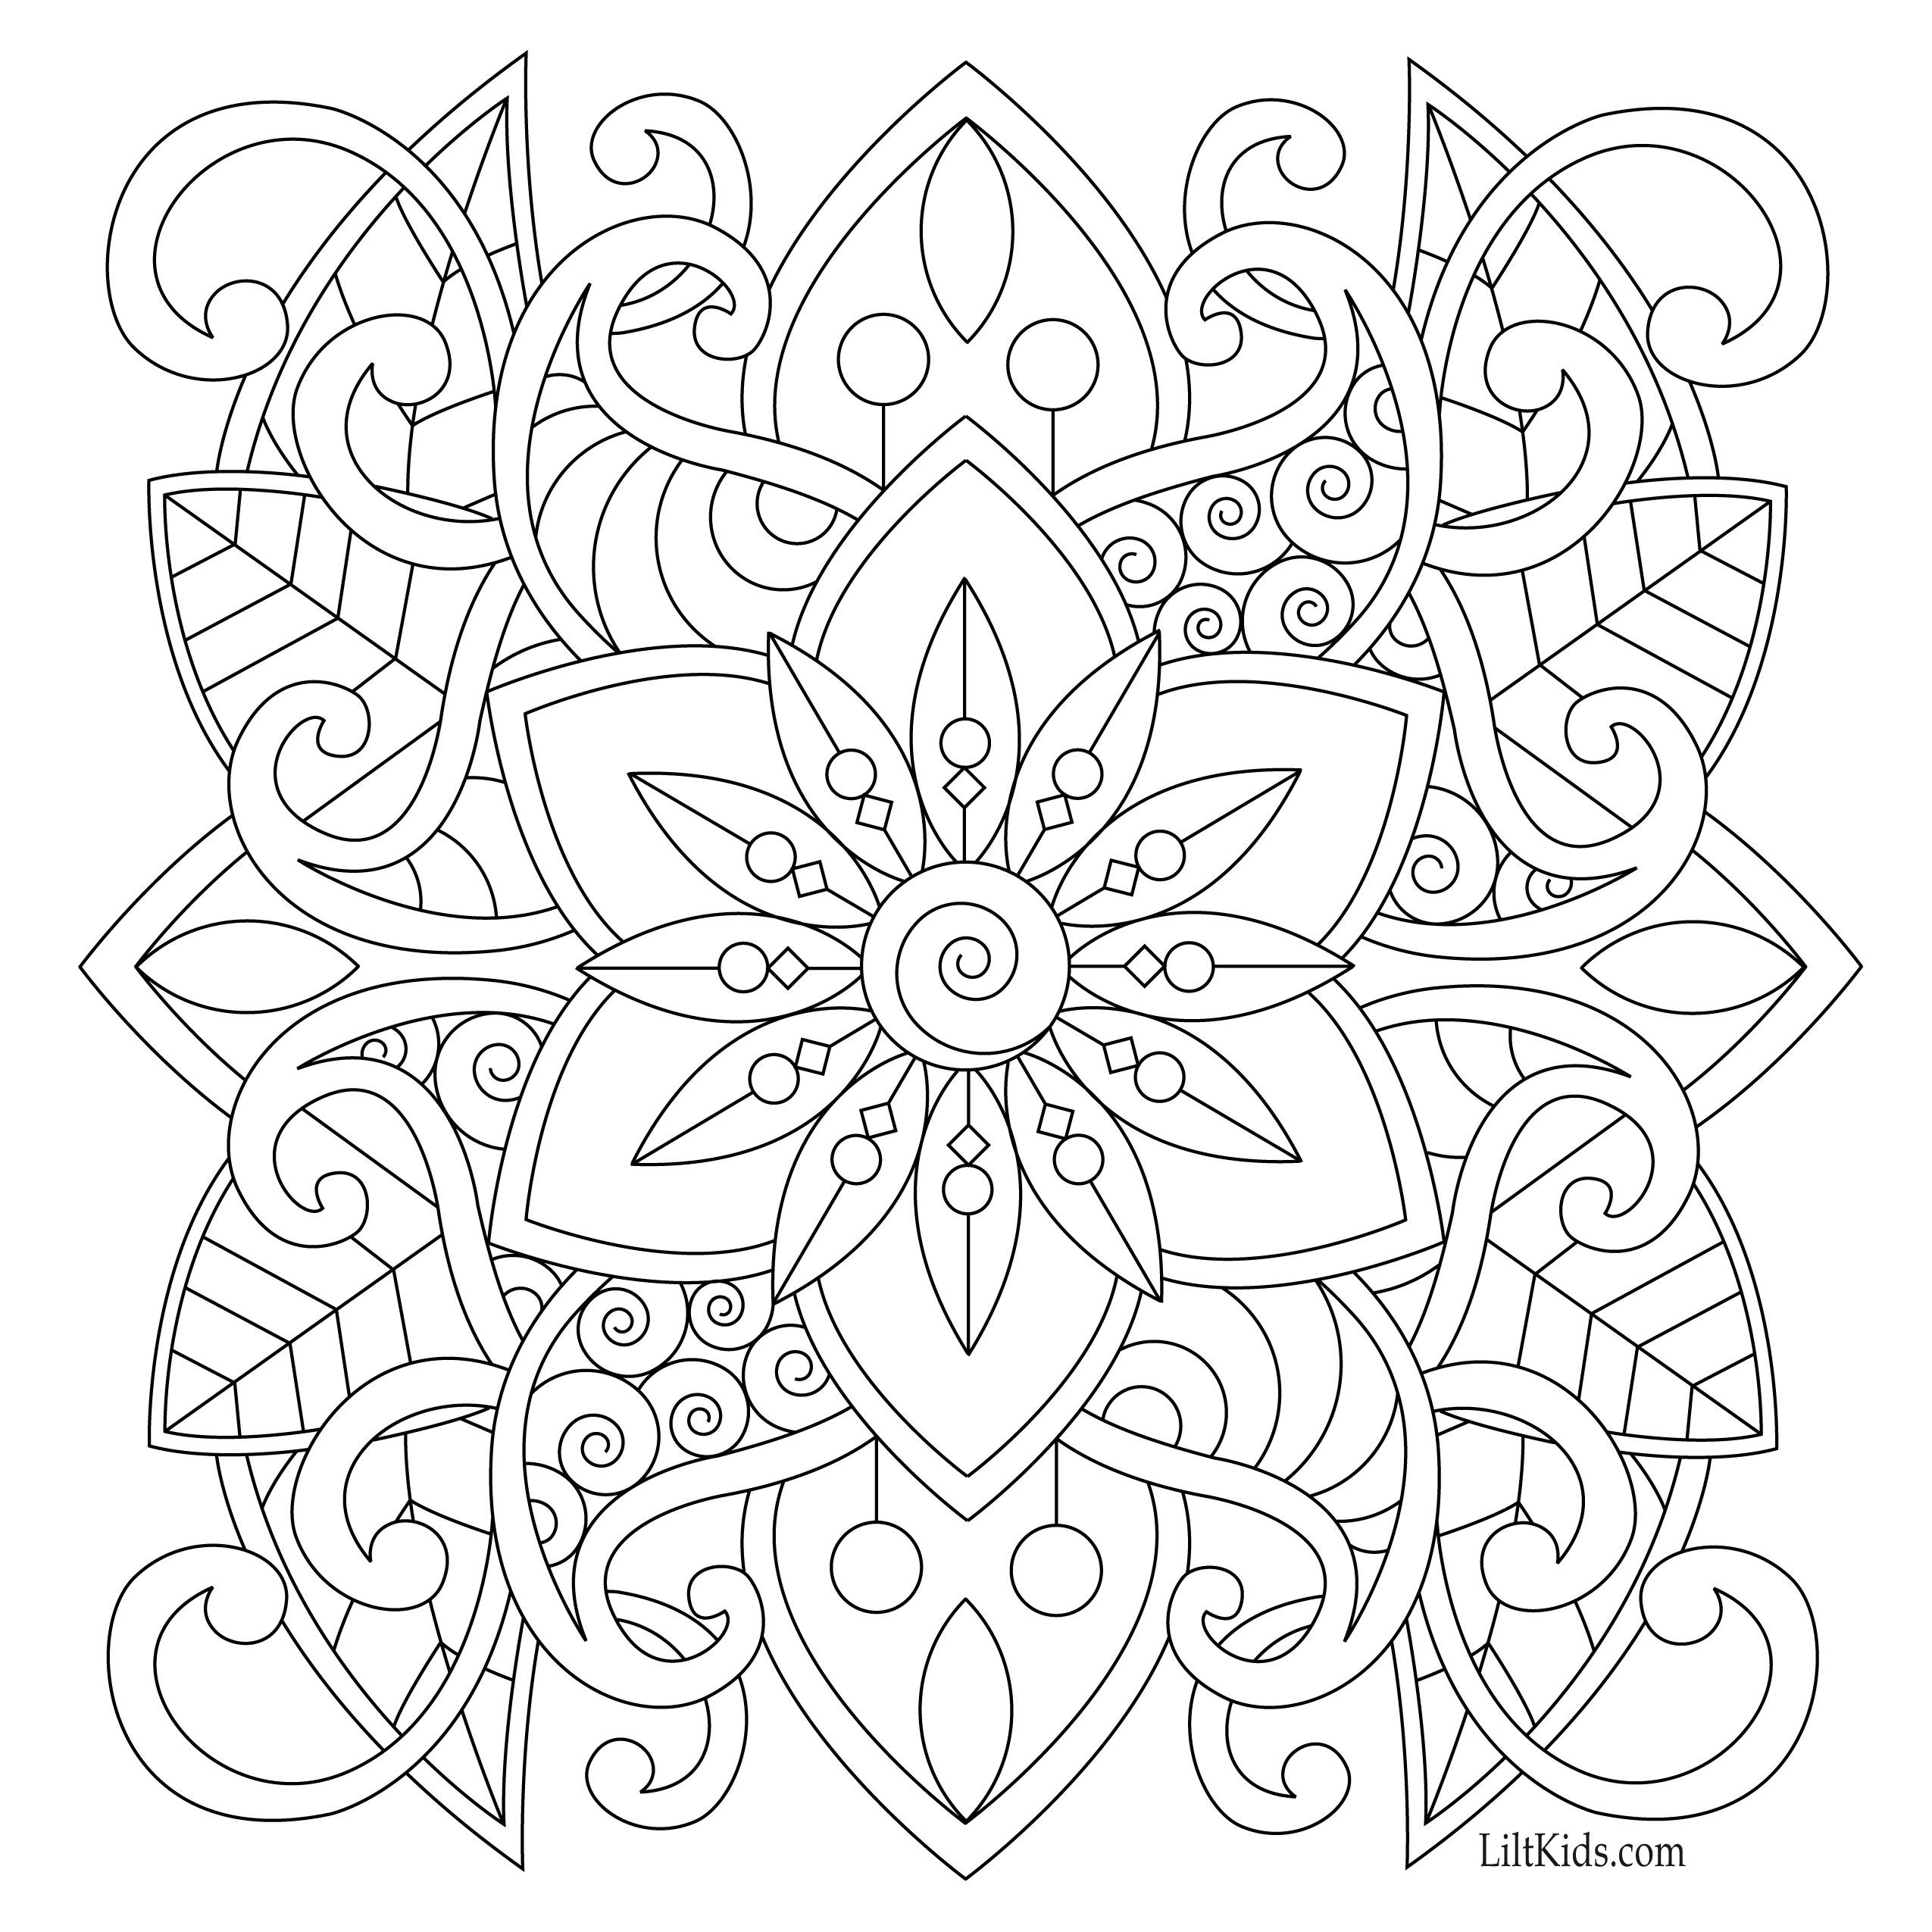 Have free easy coloring pages for adults idea